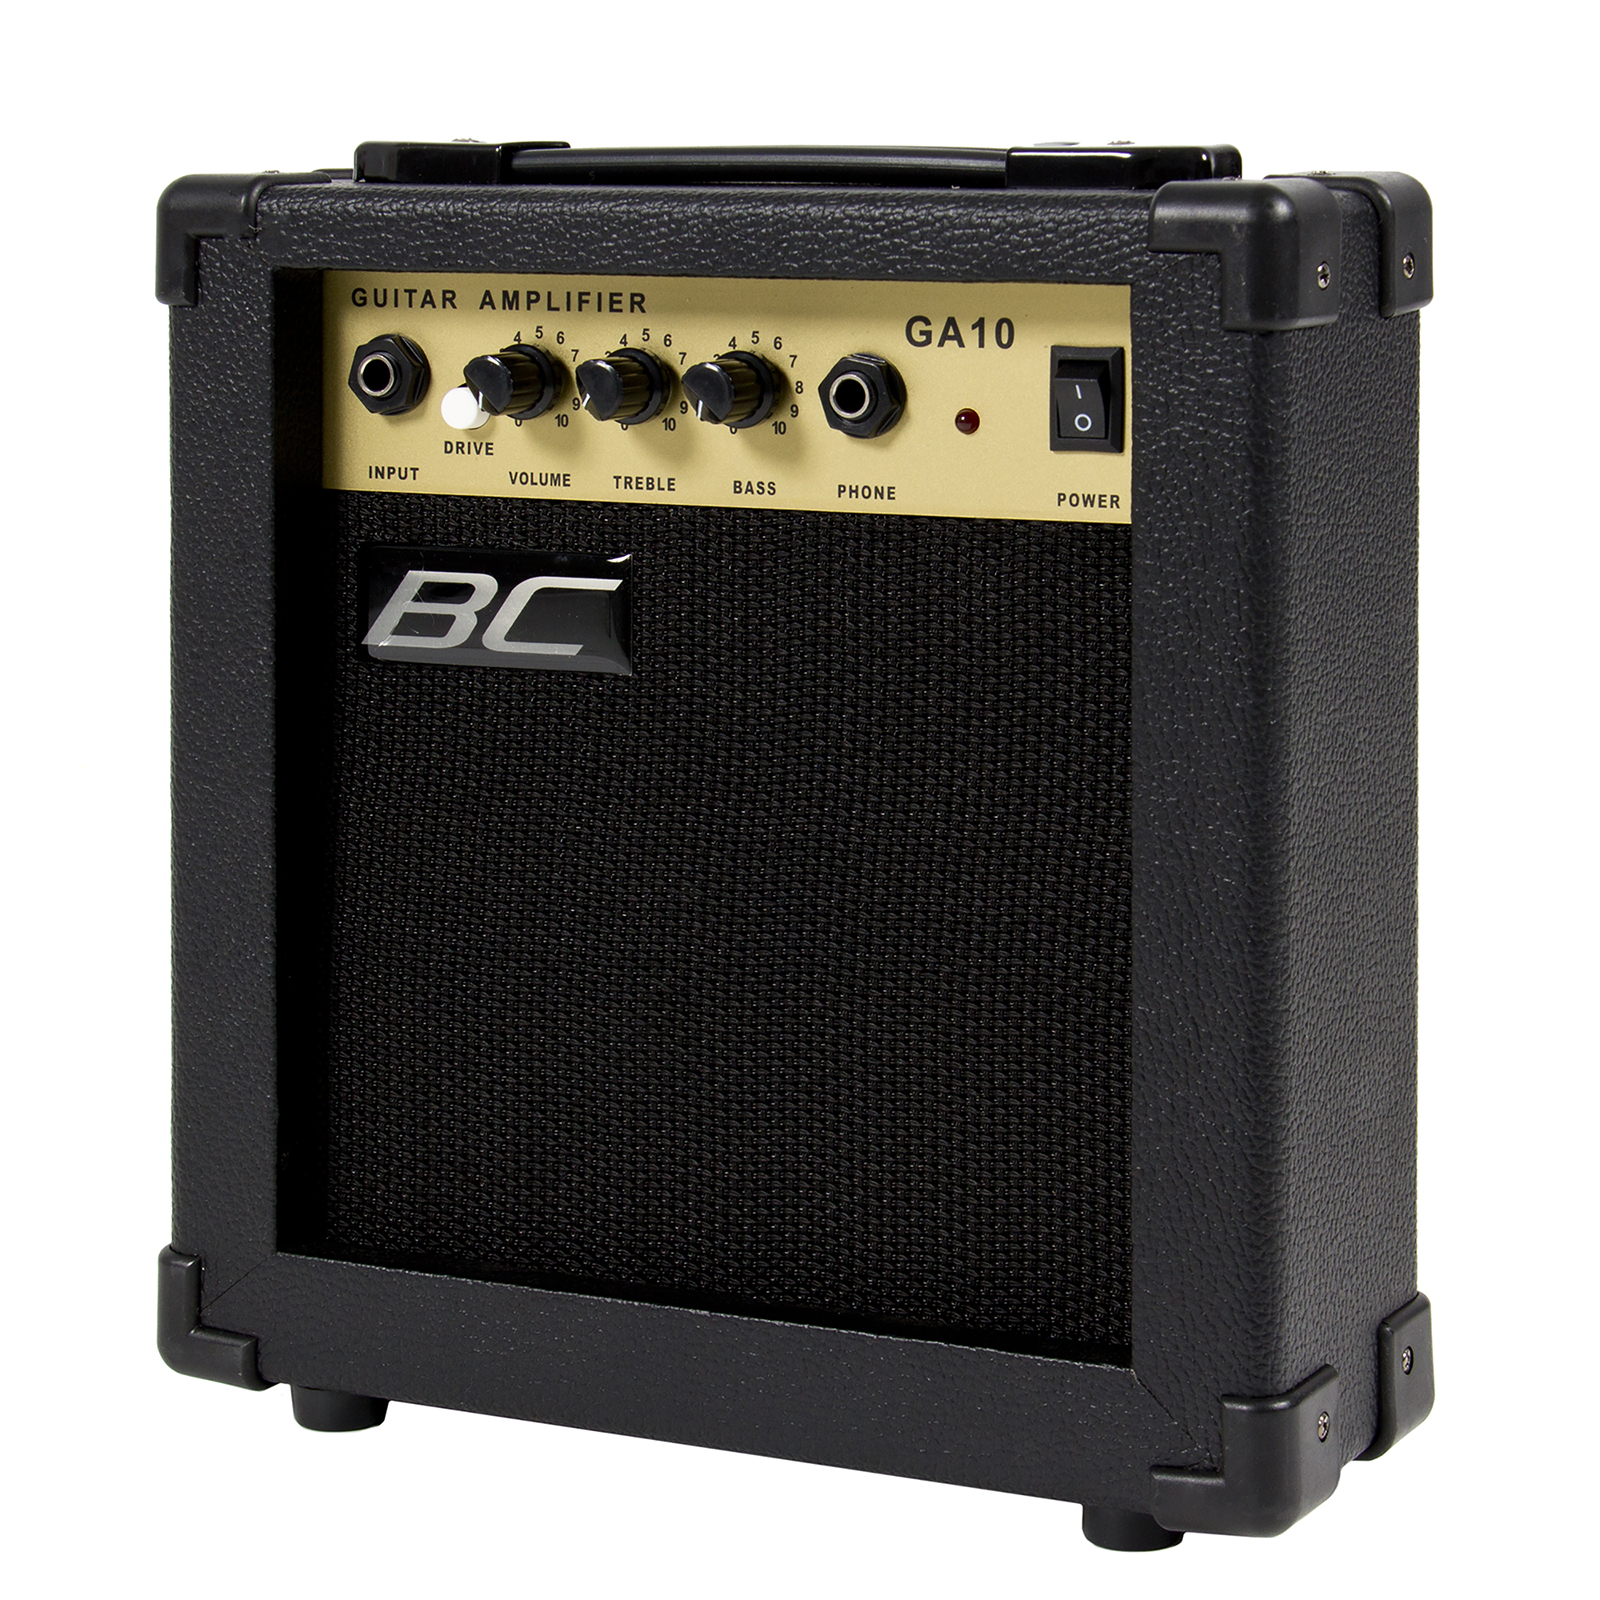 BCP-39in-Beginner-Electric-Guitar-Kit-w-Case-10W-Amp-Tremolo-Bar thumbnail 11